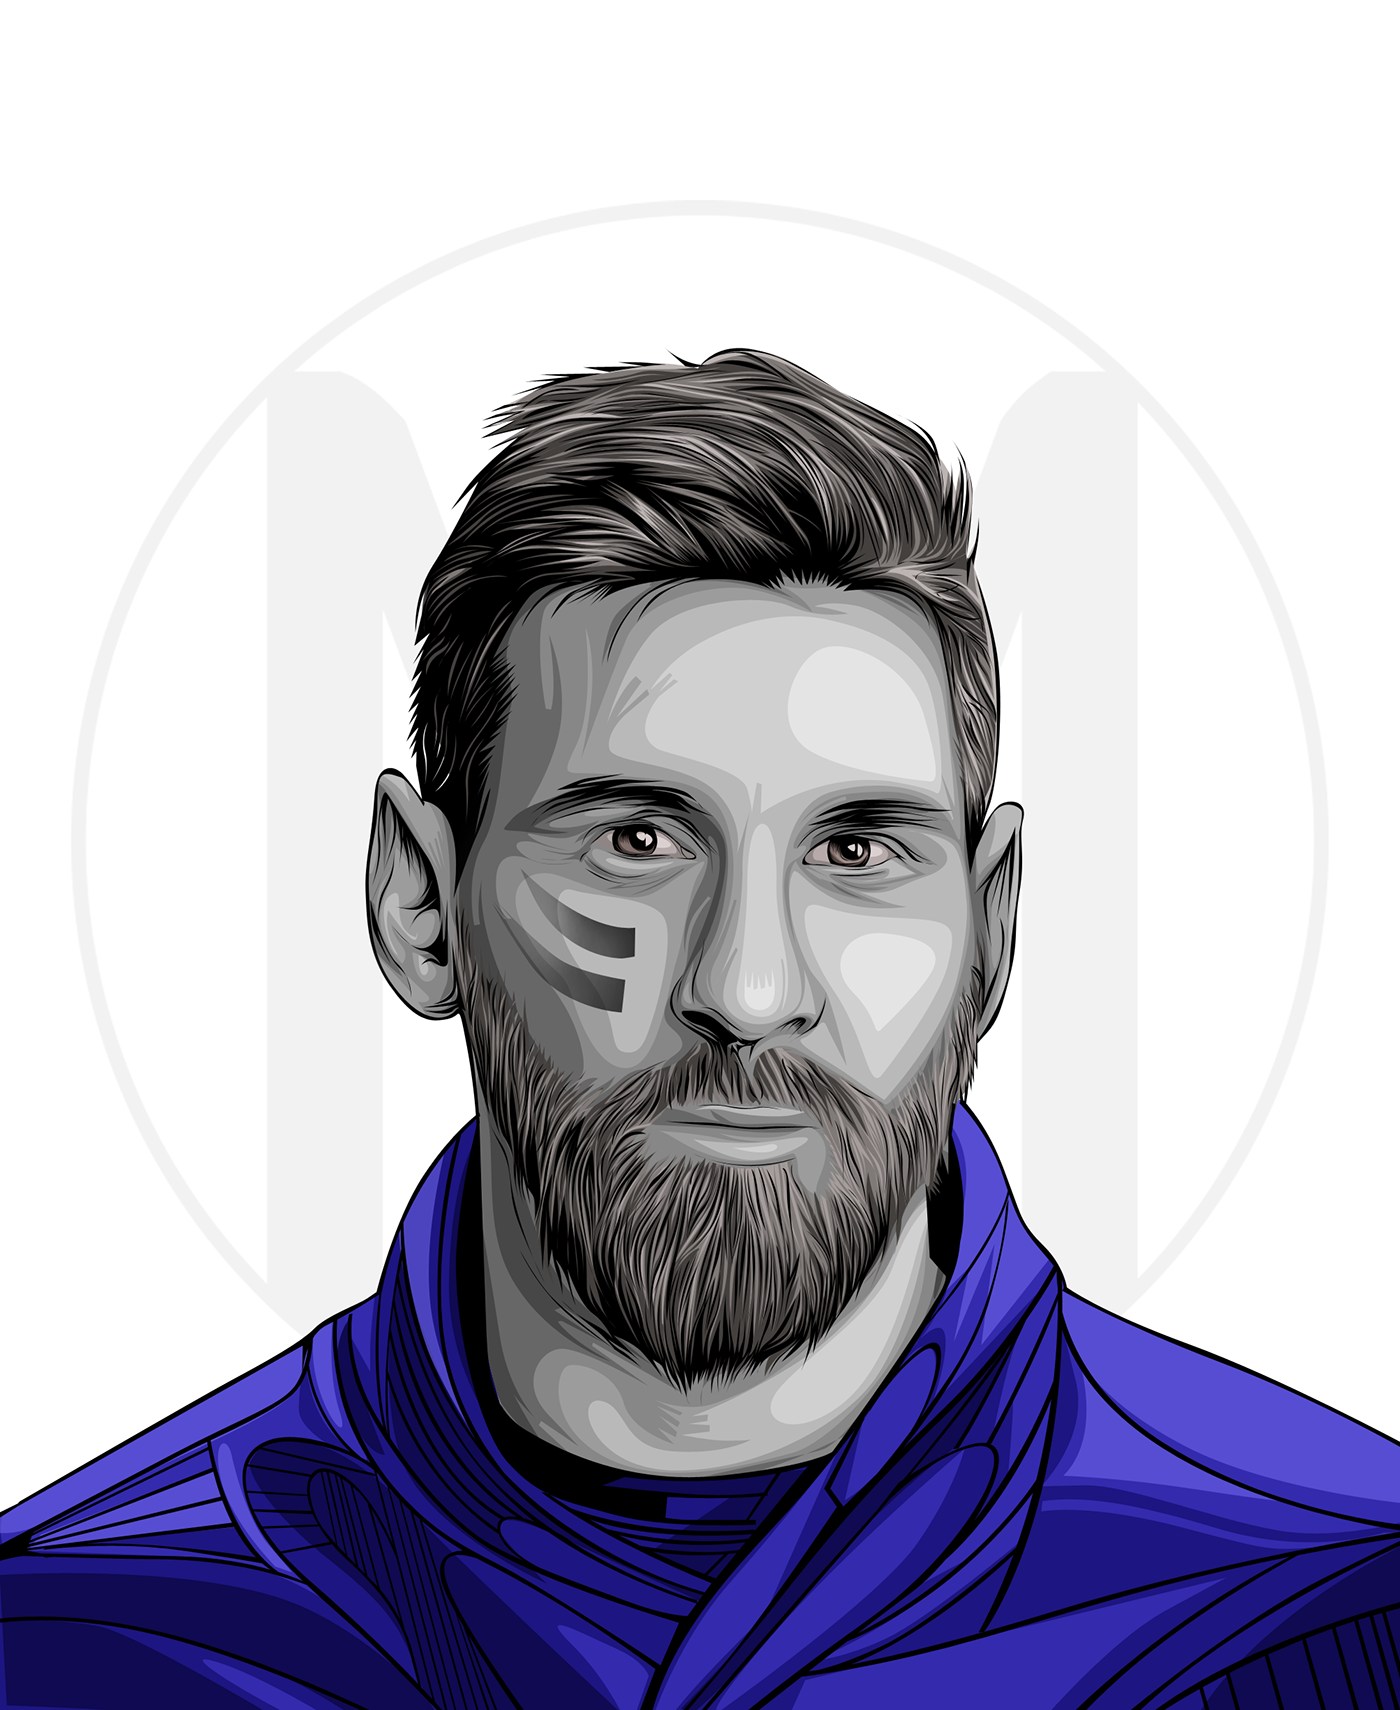 Drawing messi portrait. On behance thank you